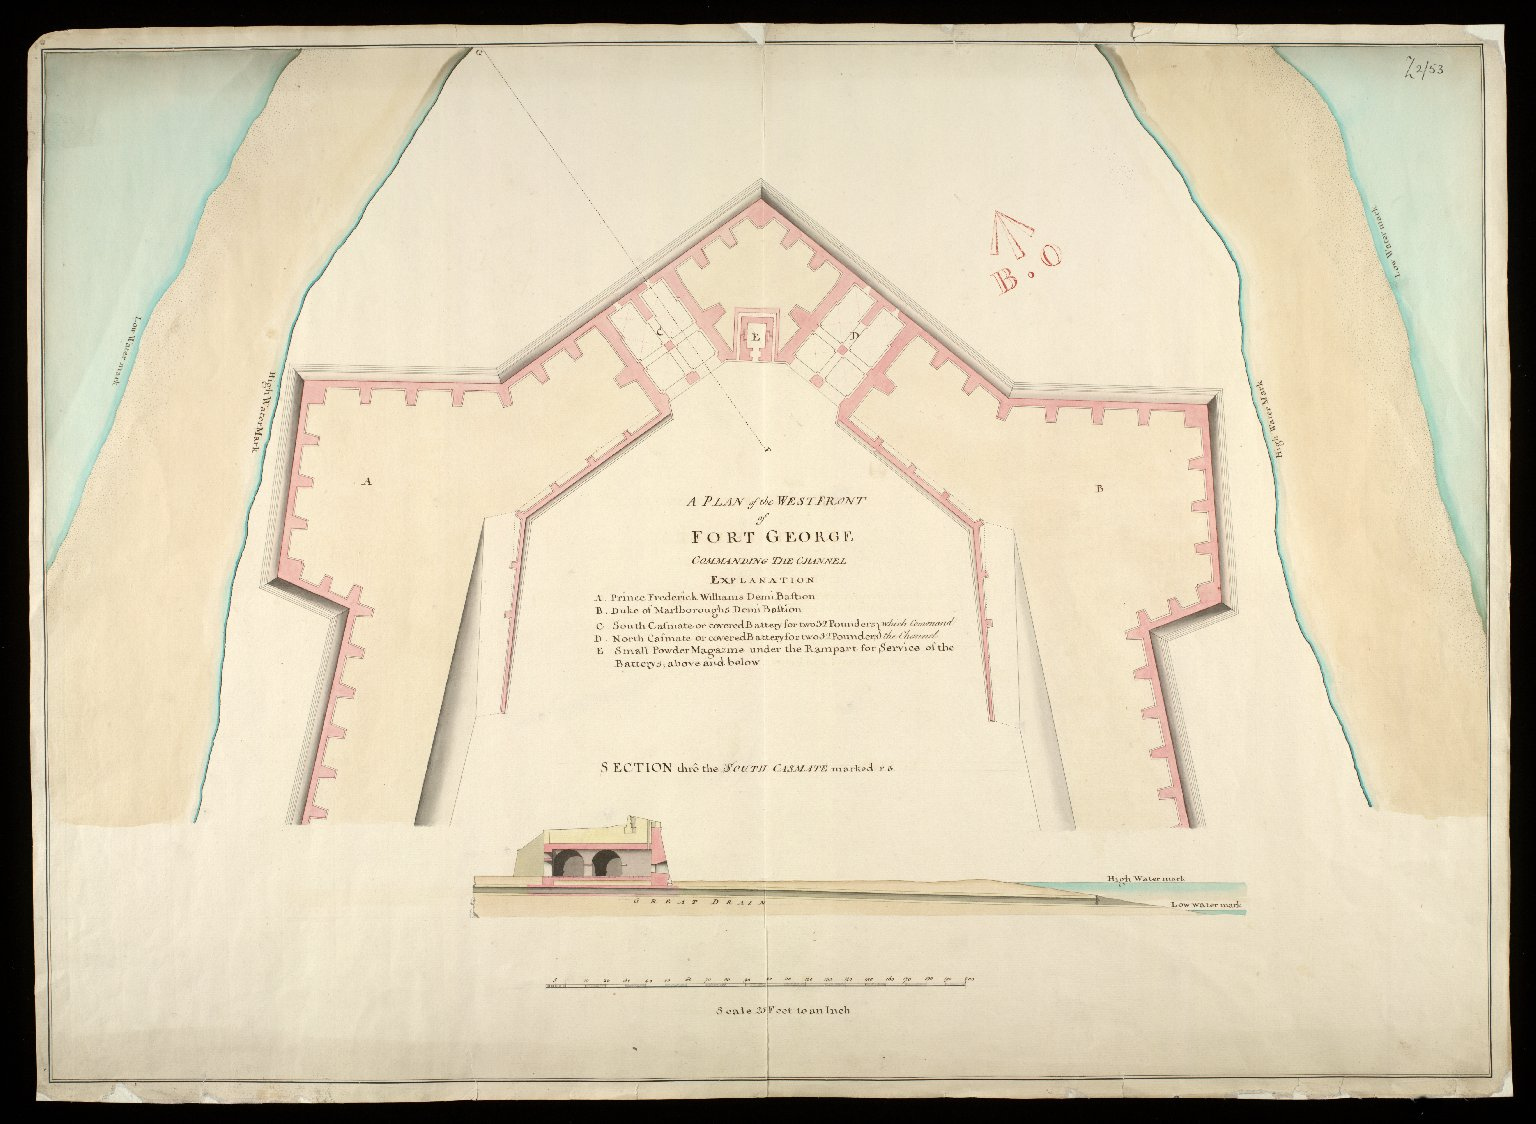 A Plan of the west front of Fort George, commanding the channel : section thro the south casmate marked FG [1 of 1]